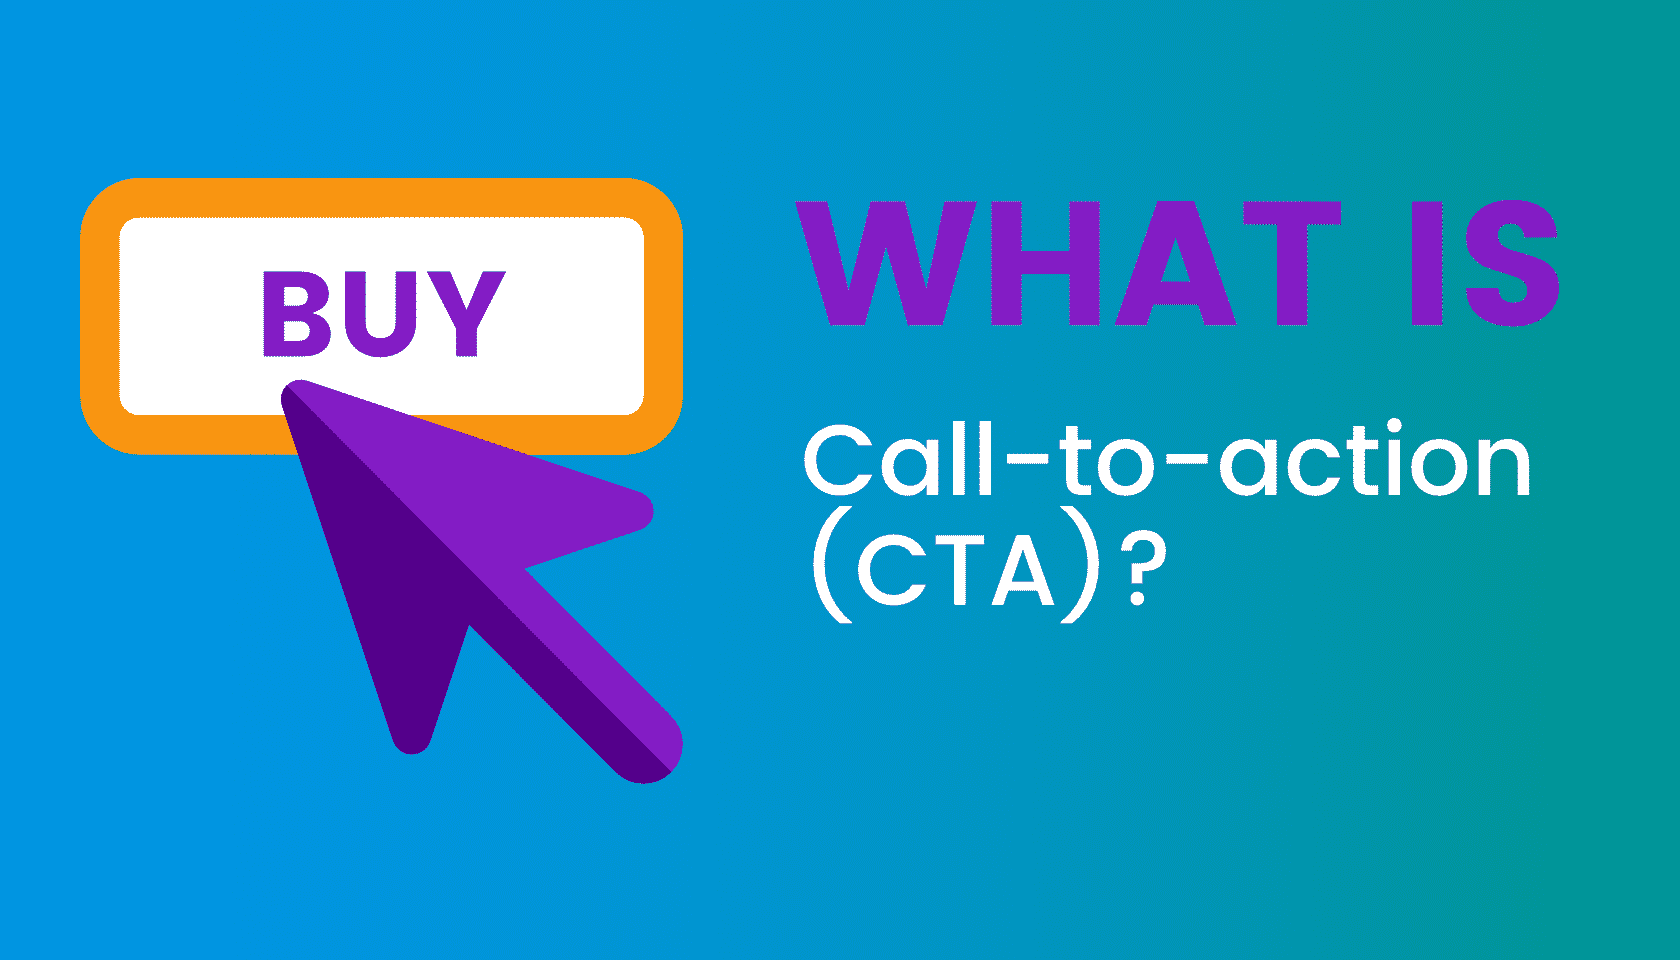 What is: Call-to-action (CTA)